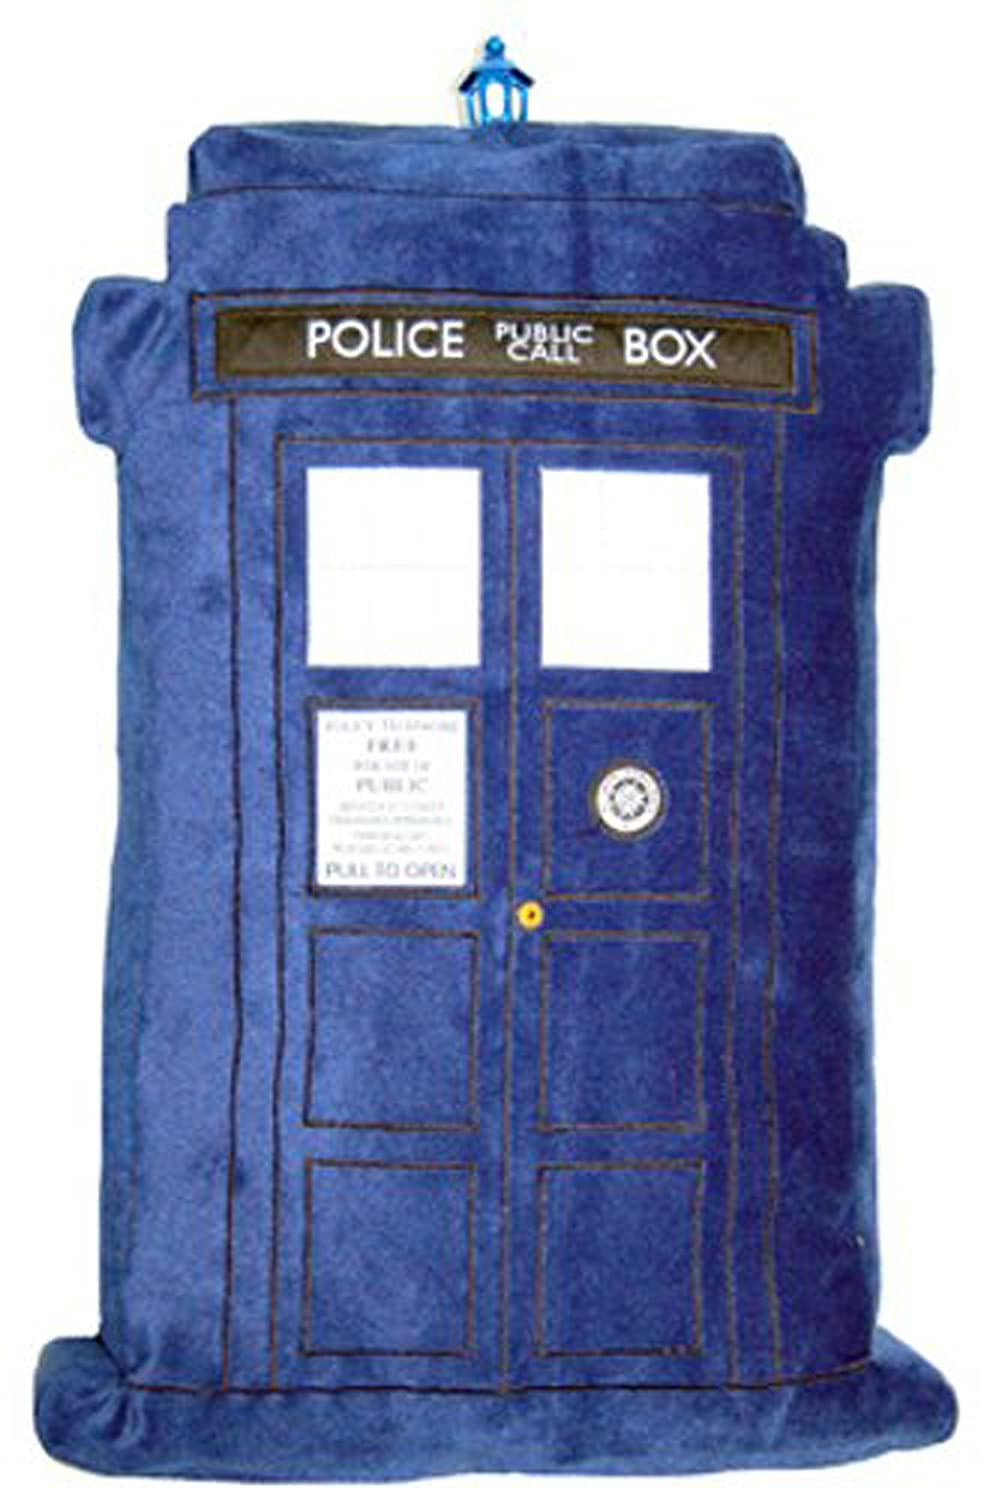 Doctor Who Throw Pillow - Dr. Who TARDIS Plush Cushion with Light and Sound - 20 inch Tall